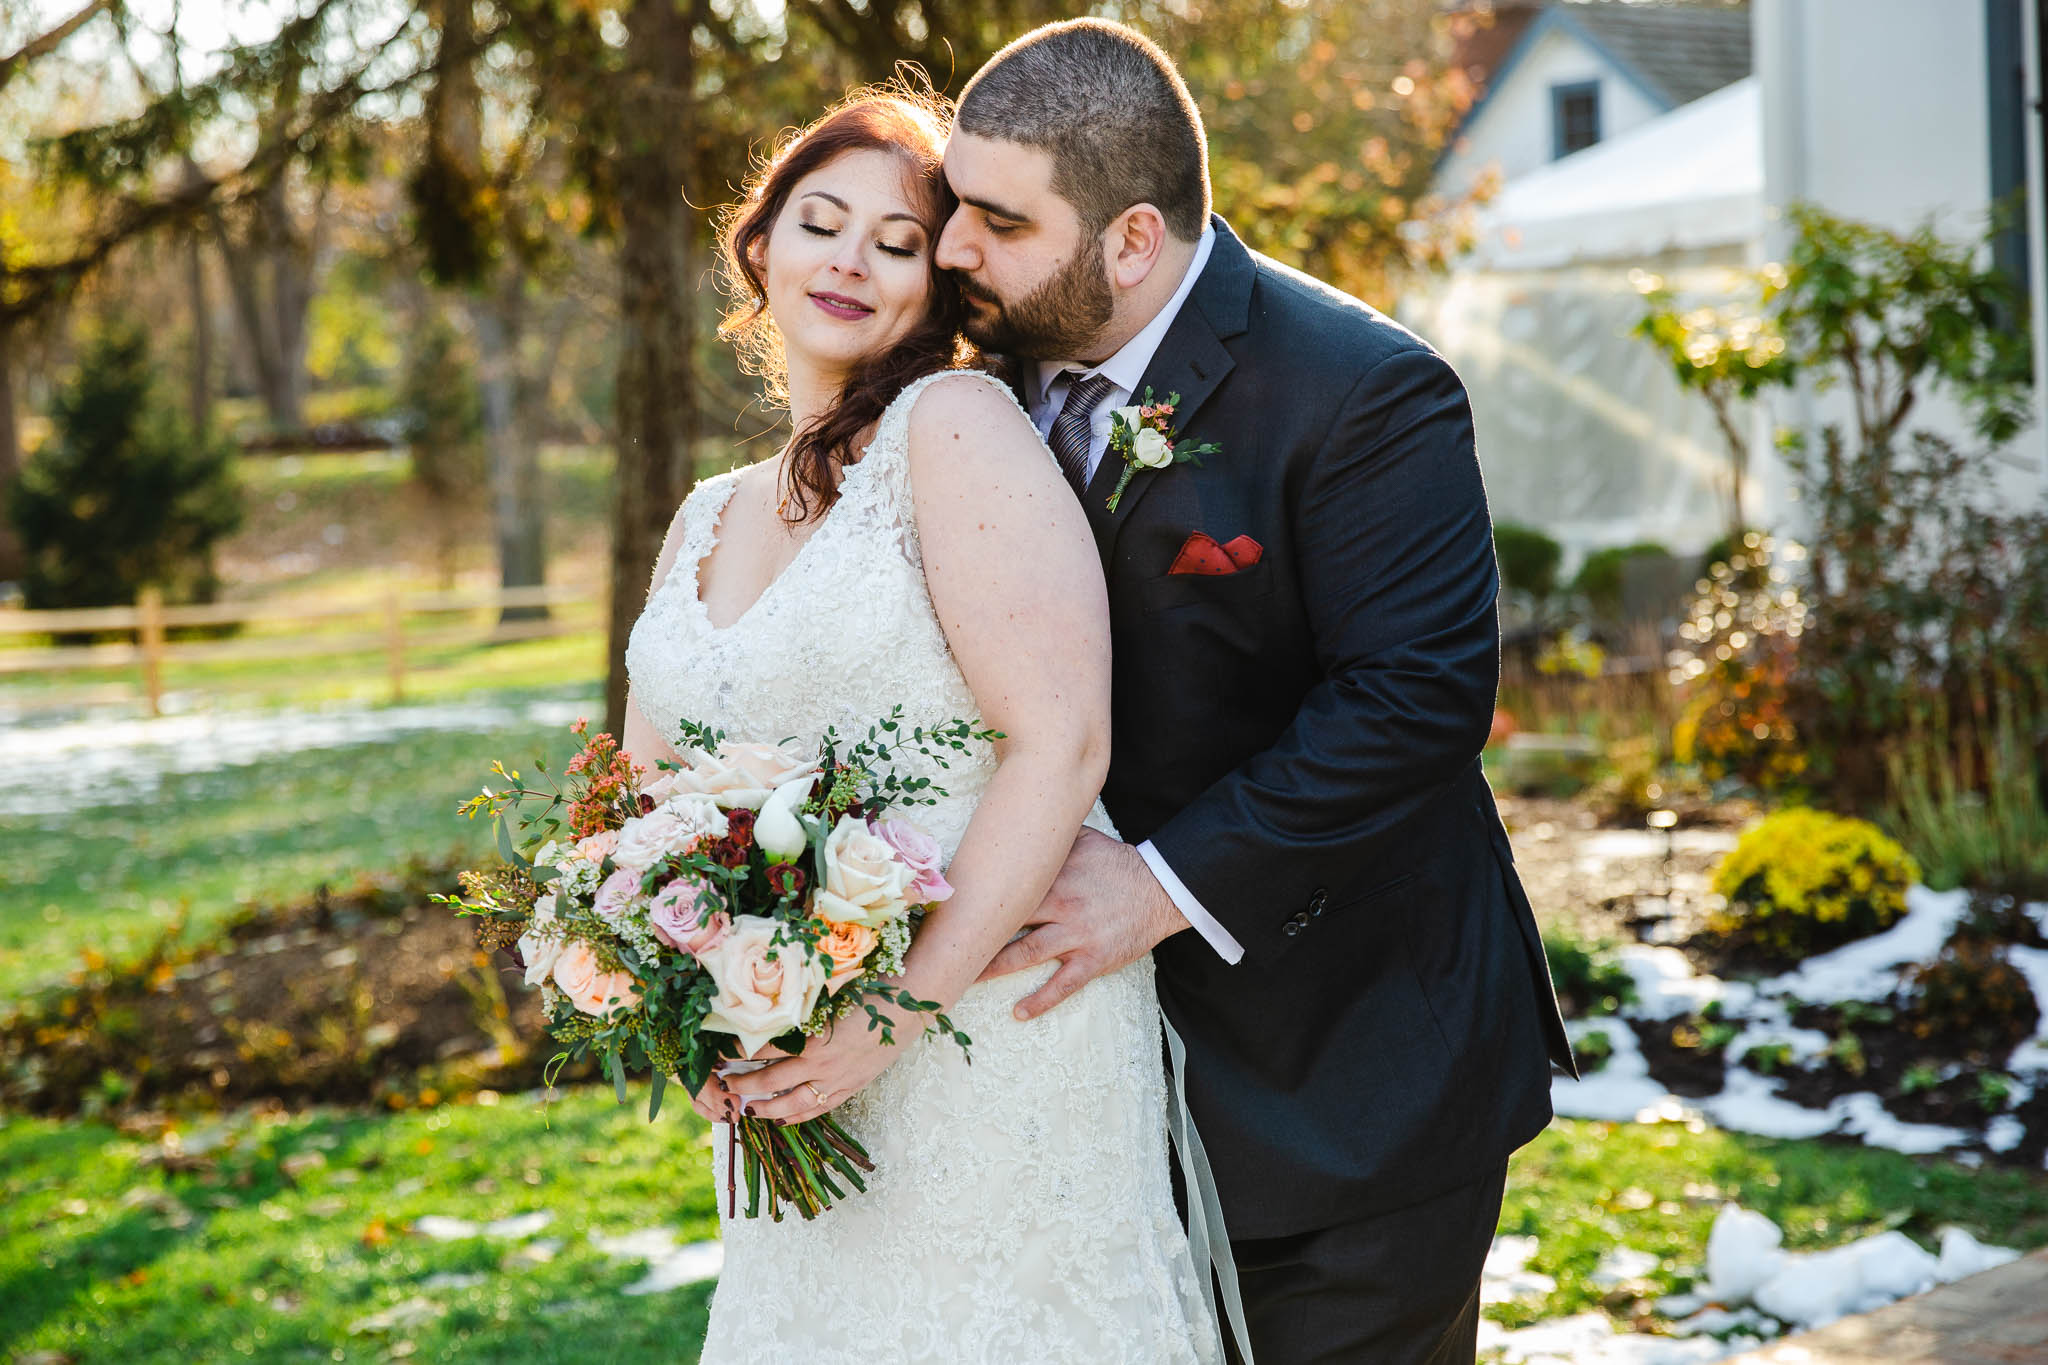 Kaitlyn and Matt - We were blown away by the final photos - she is truly an artist!